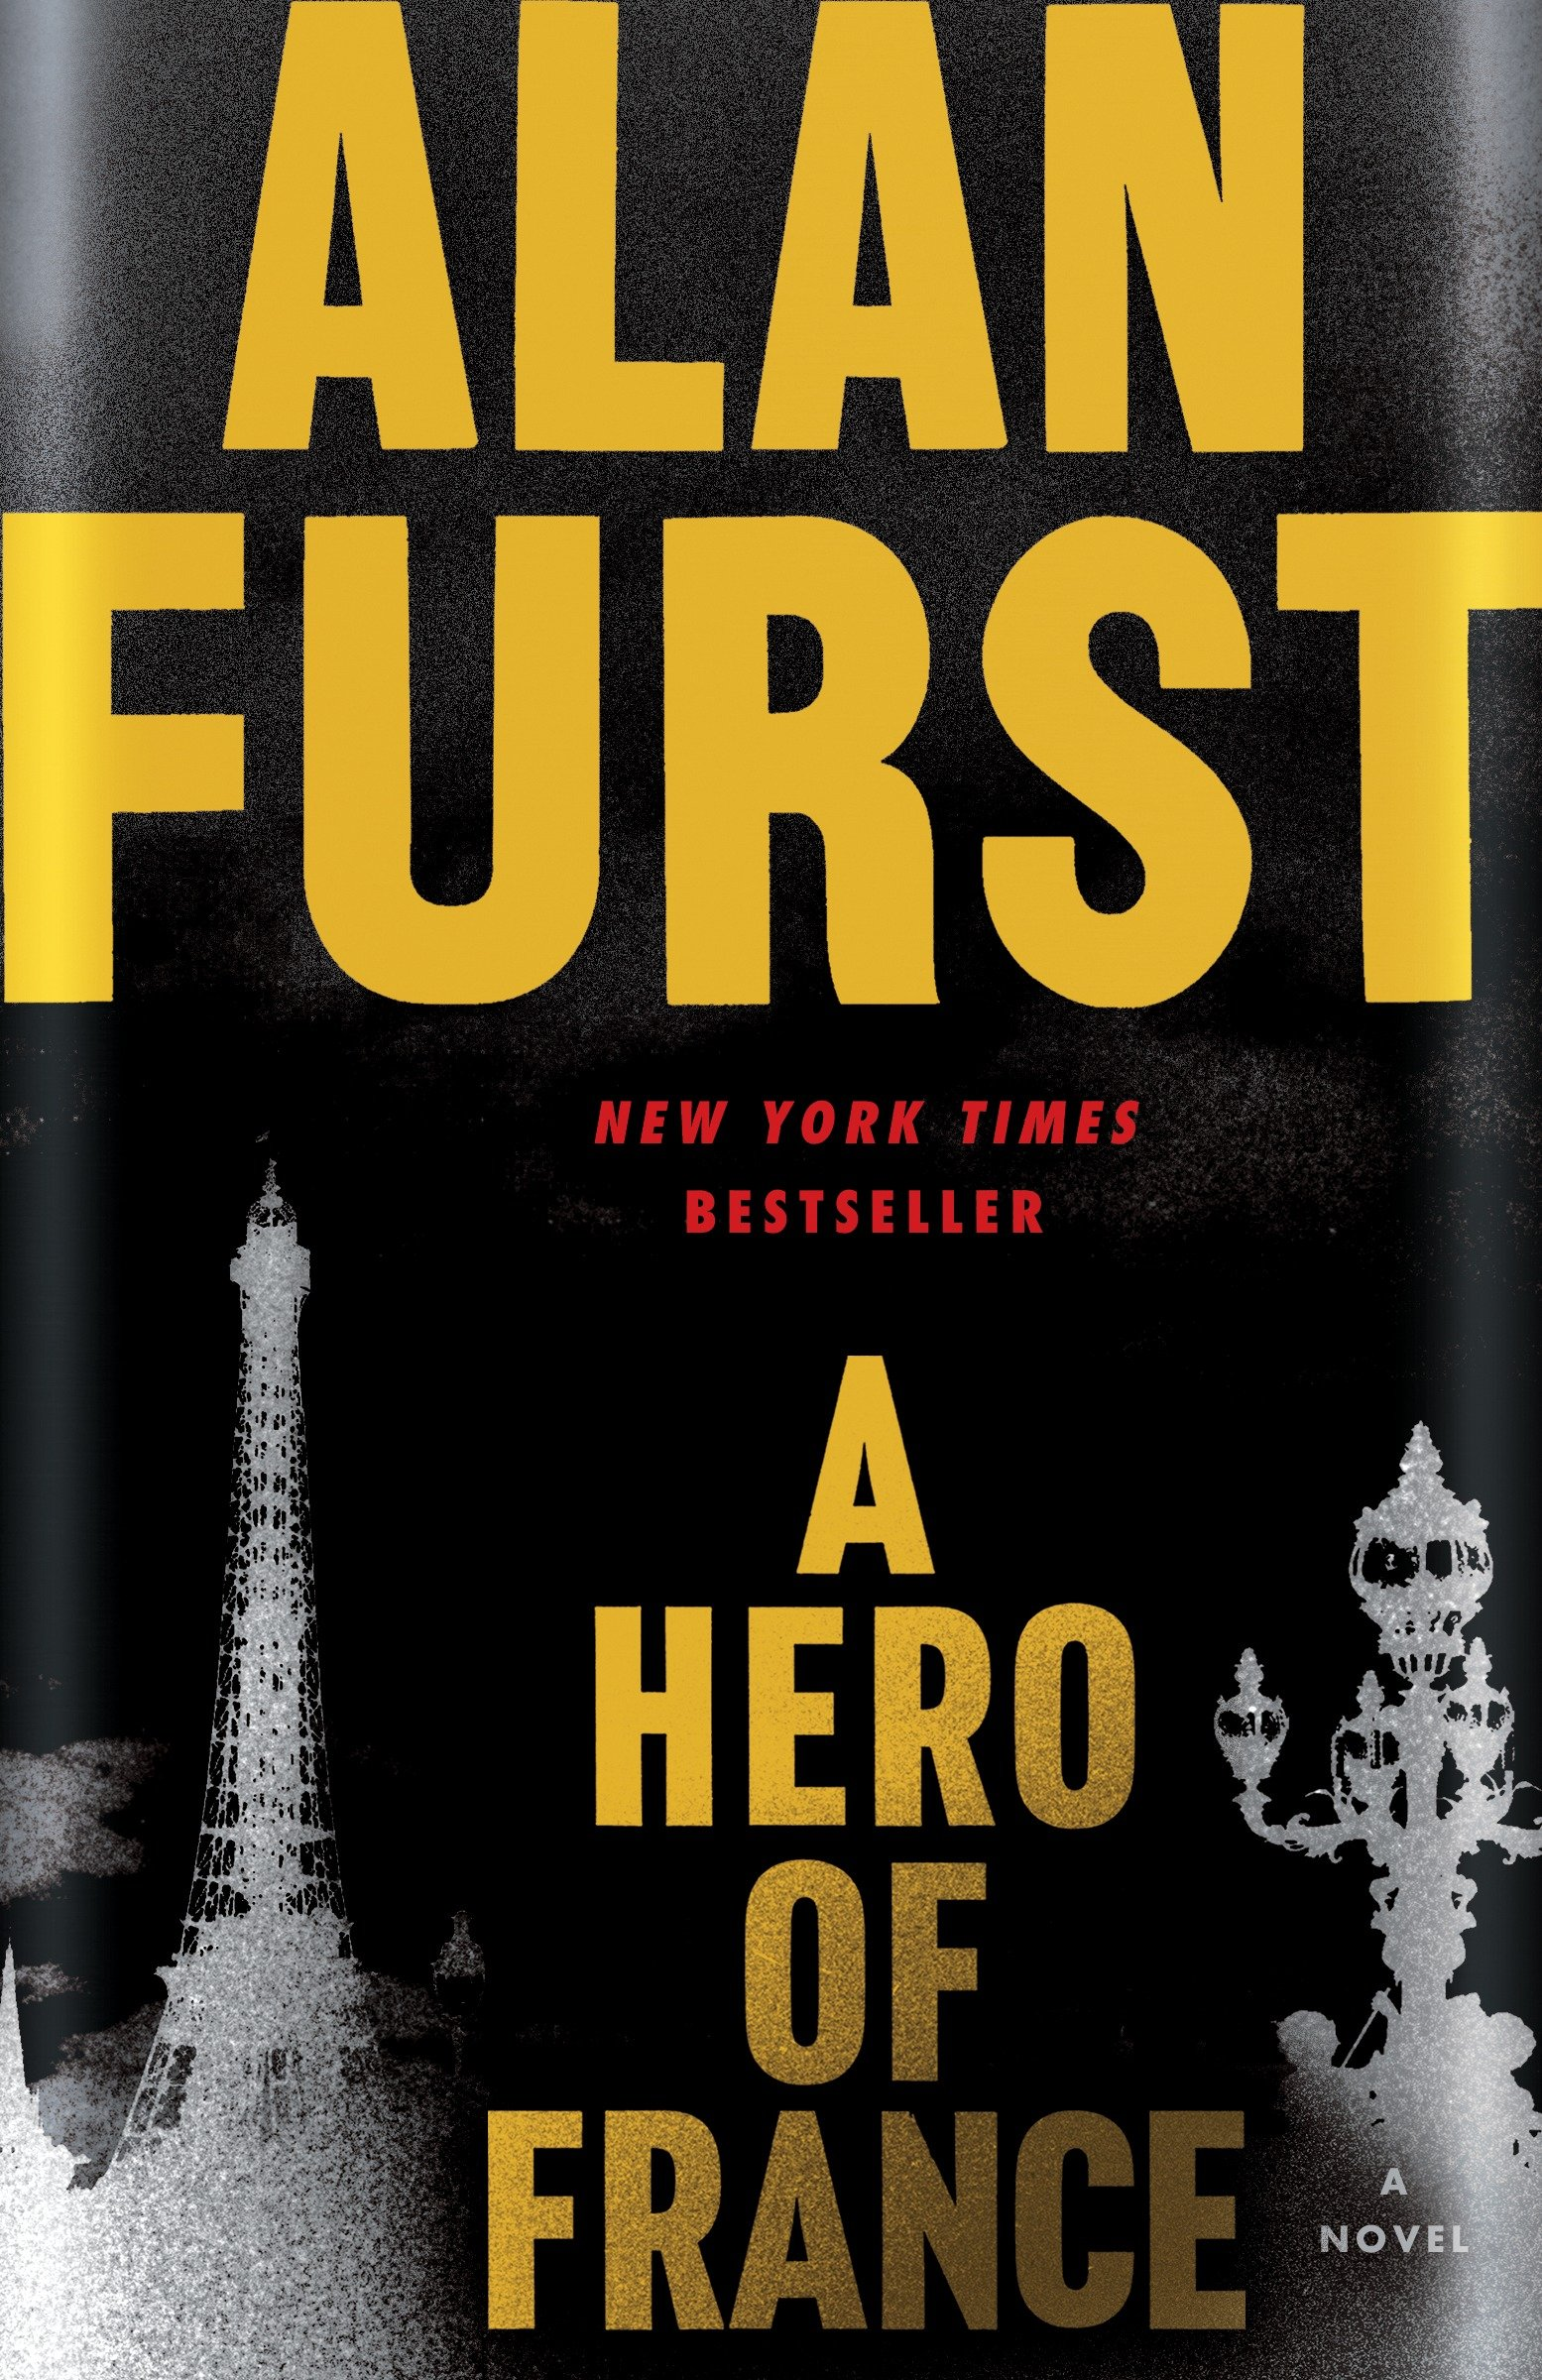 A hero of France cover image